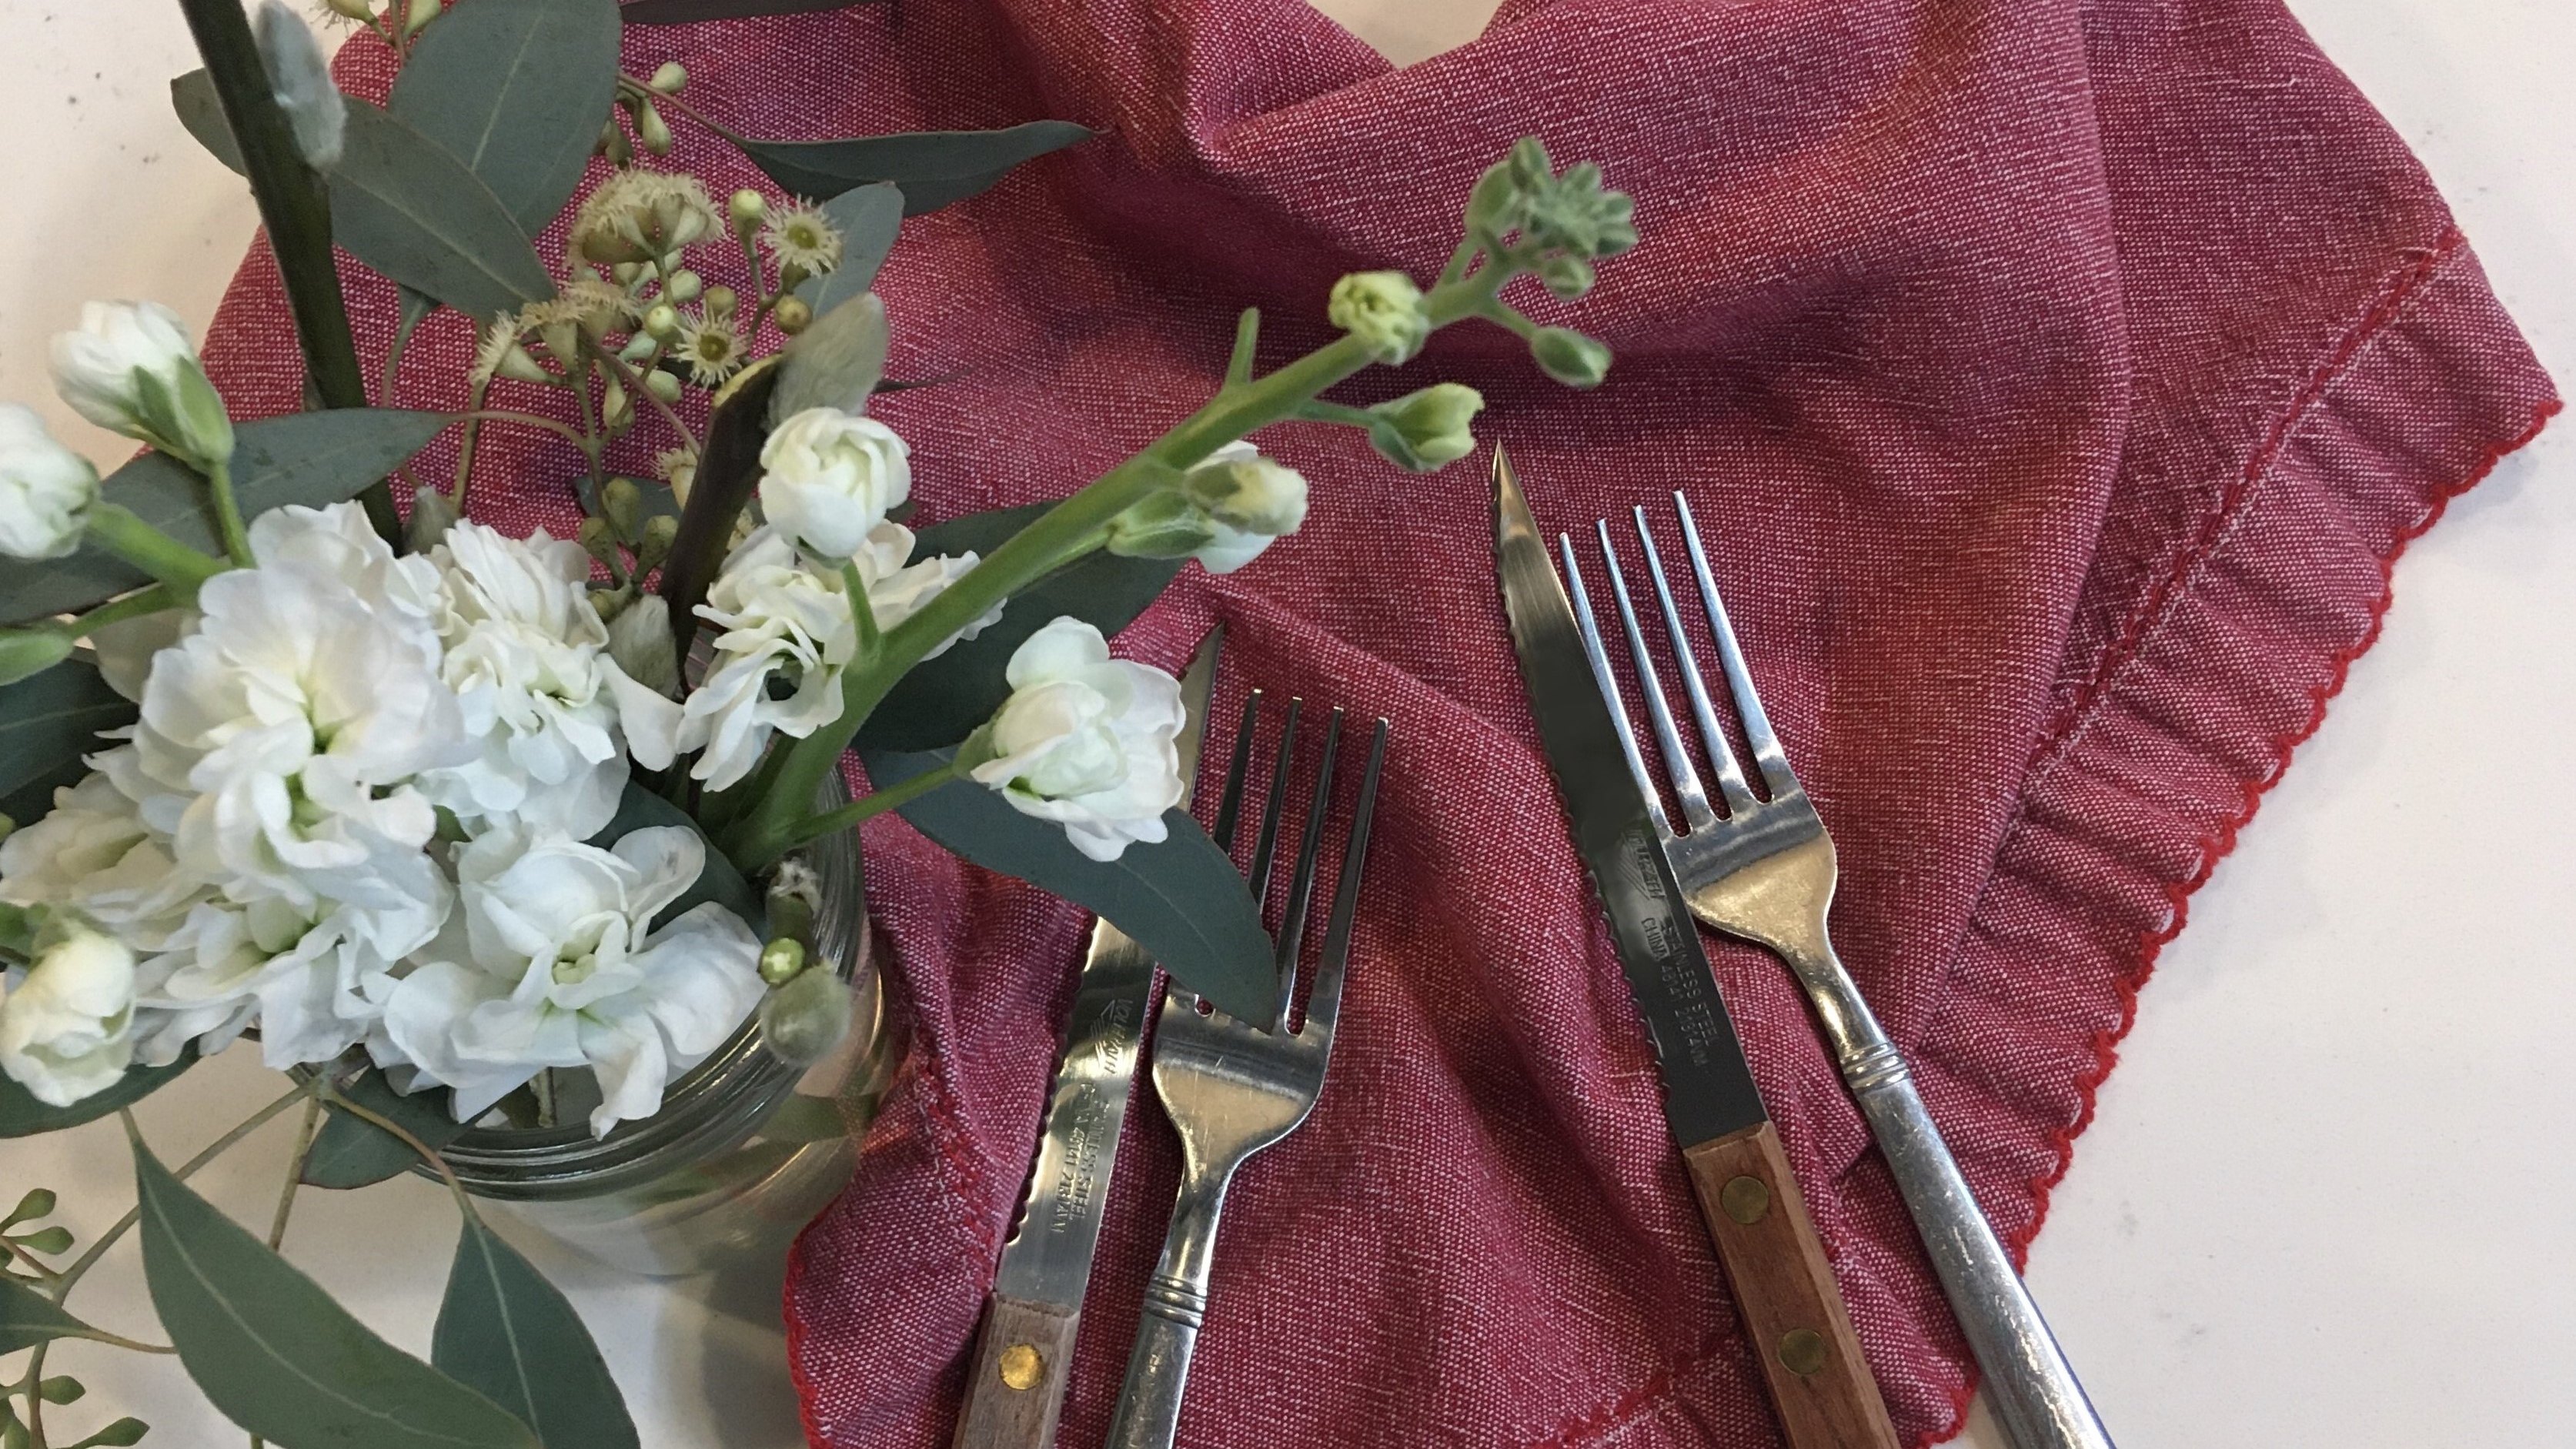 Place setting with red napkin, silverware and white flowers